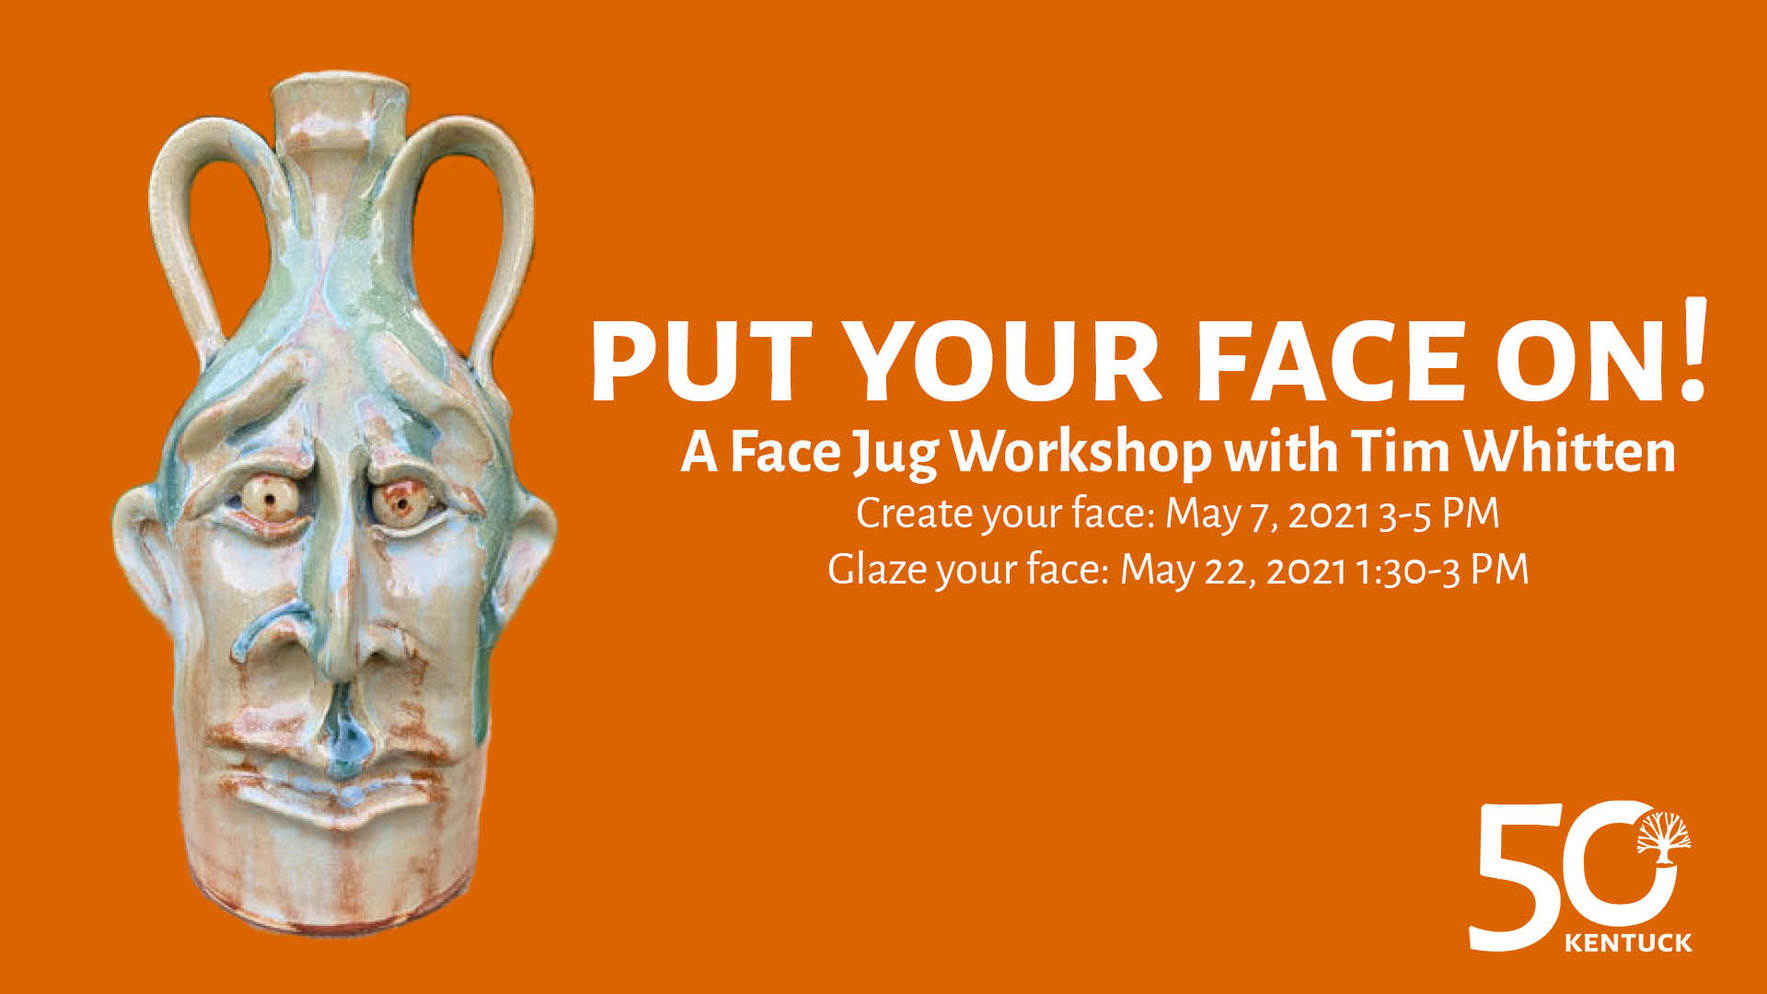 Put Your Face On: A Face Jug Workshop with Tim Whitten image